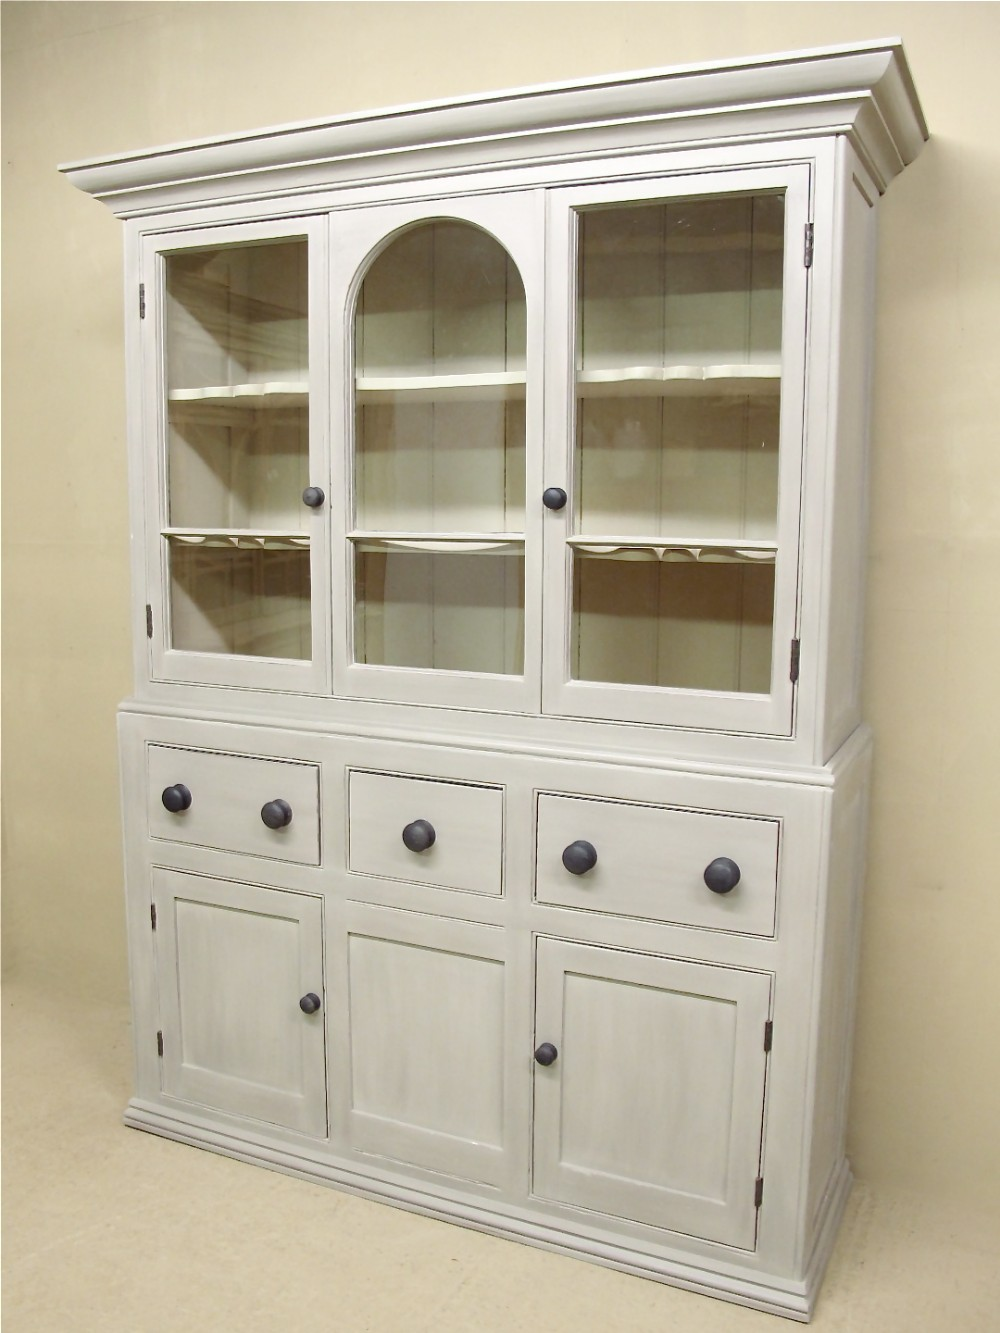 Kitchen Dresser Pine Glazed Kitchen Dresser 283828 Sellingantiquescouk